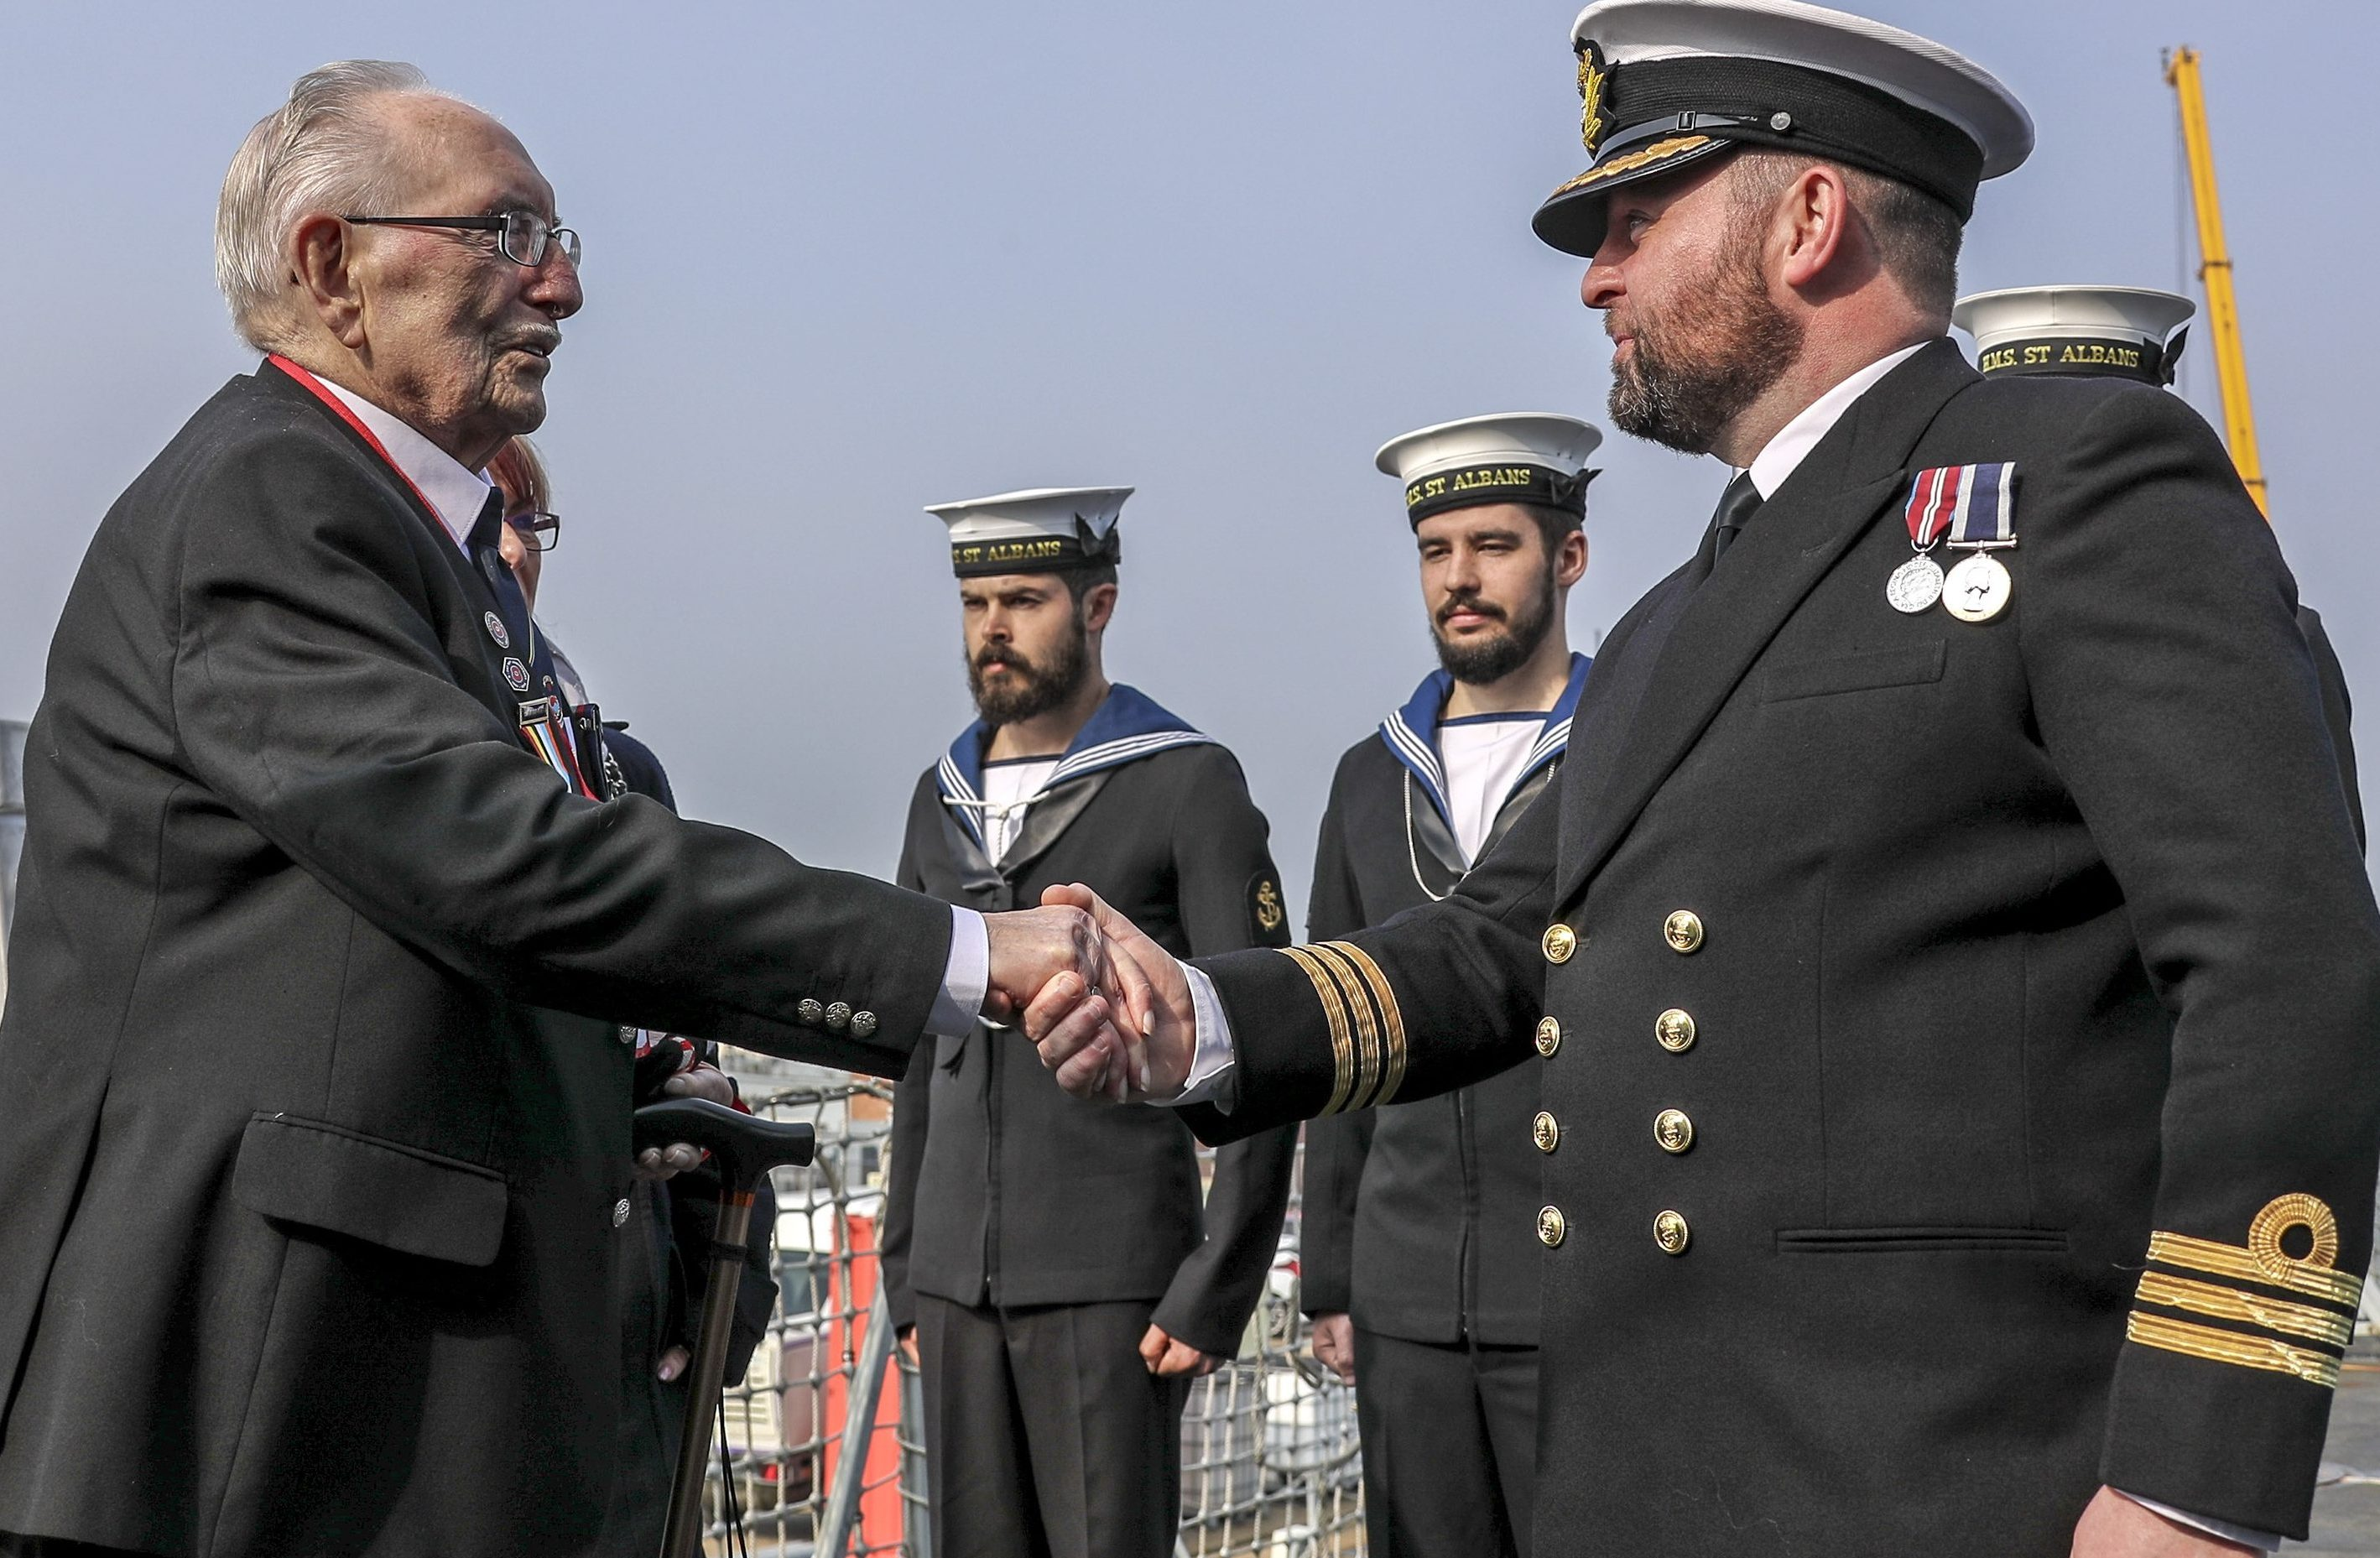 D-Day veteran, Leonard Williams, shakes hands with the Commanding Officer of HMS Saint Albans on board the ship, with two navy sailors standing to attention in the background.